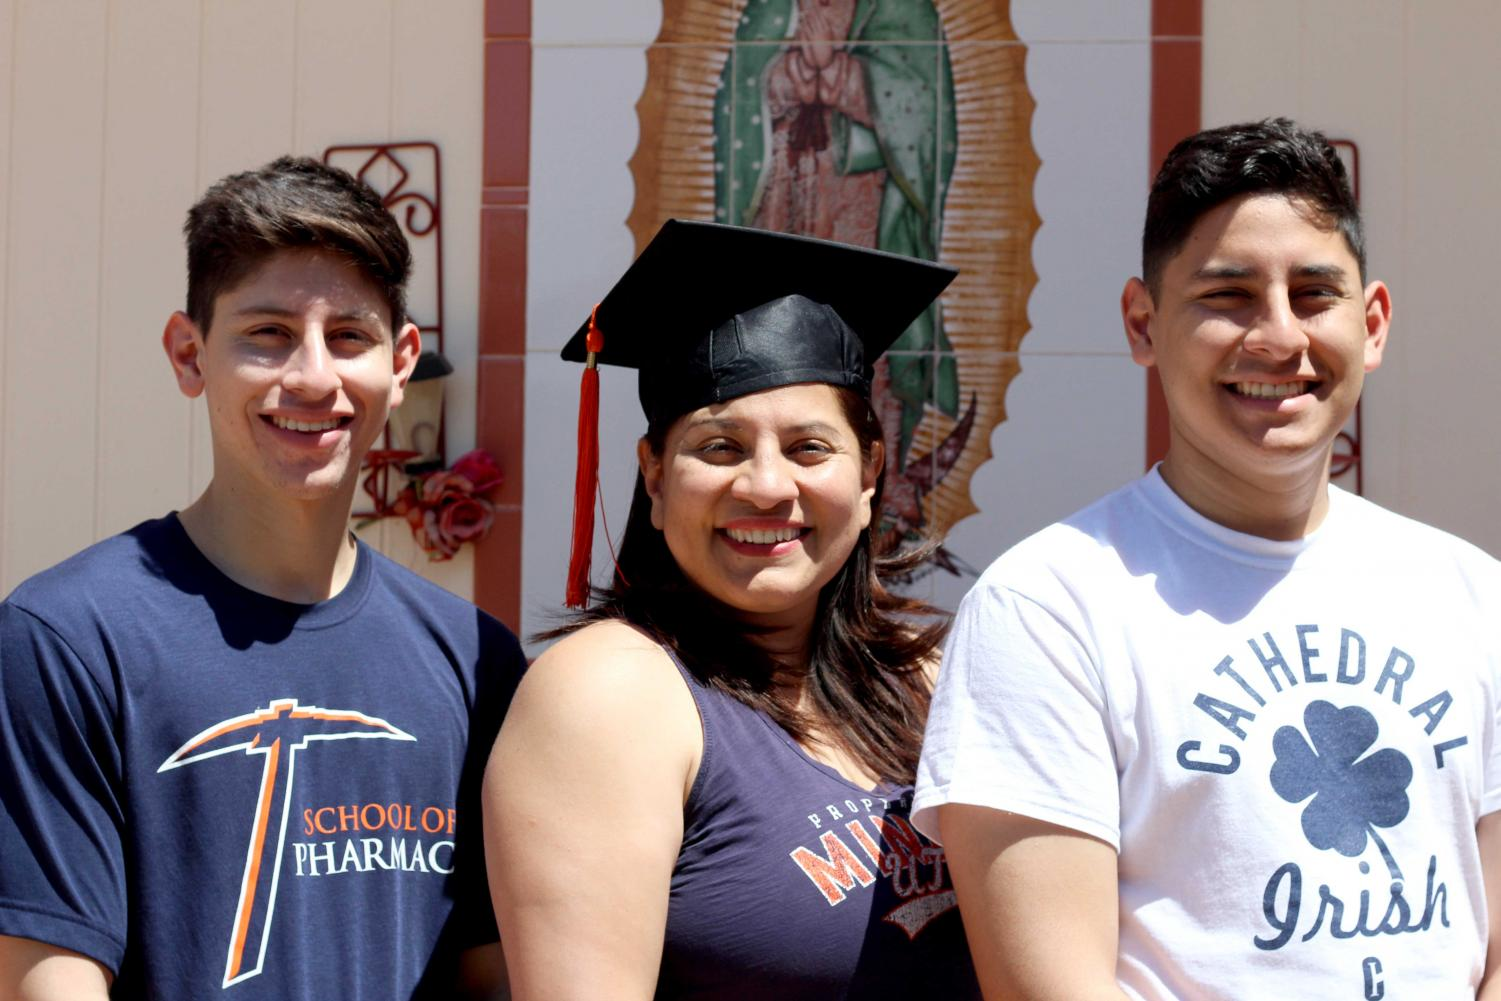 Jaclyn Nava and her sons Albert Nava Jr.,left, and Samuel Nava, right, have been going to school together at UTEP.